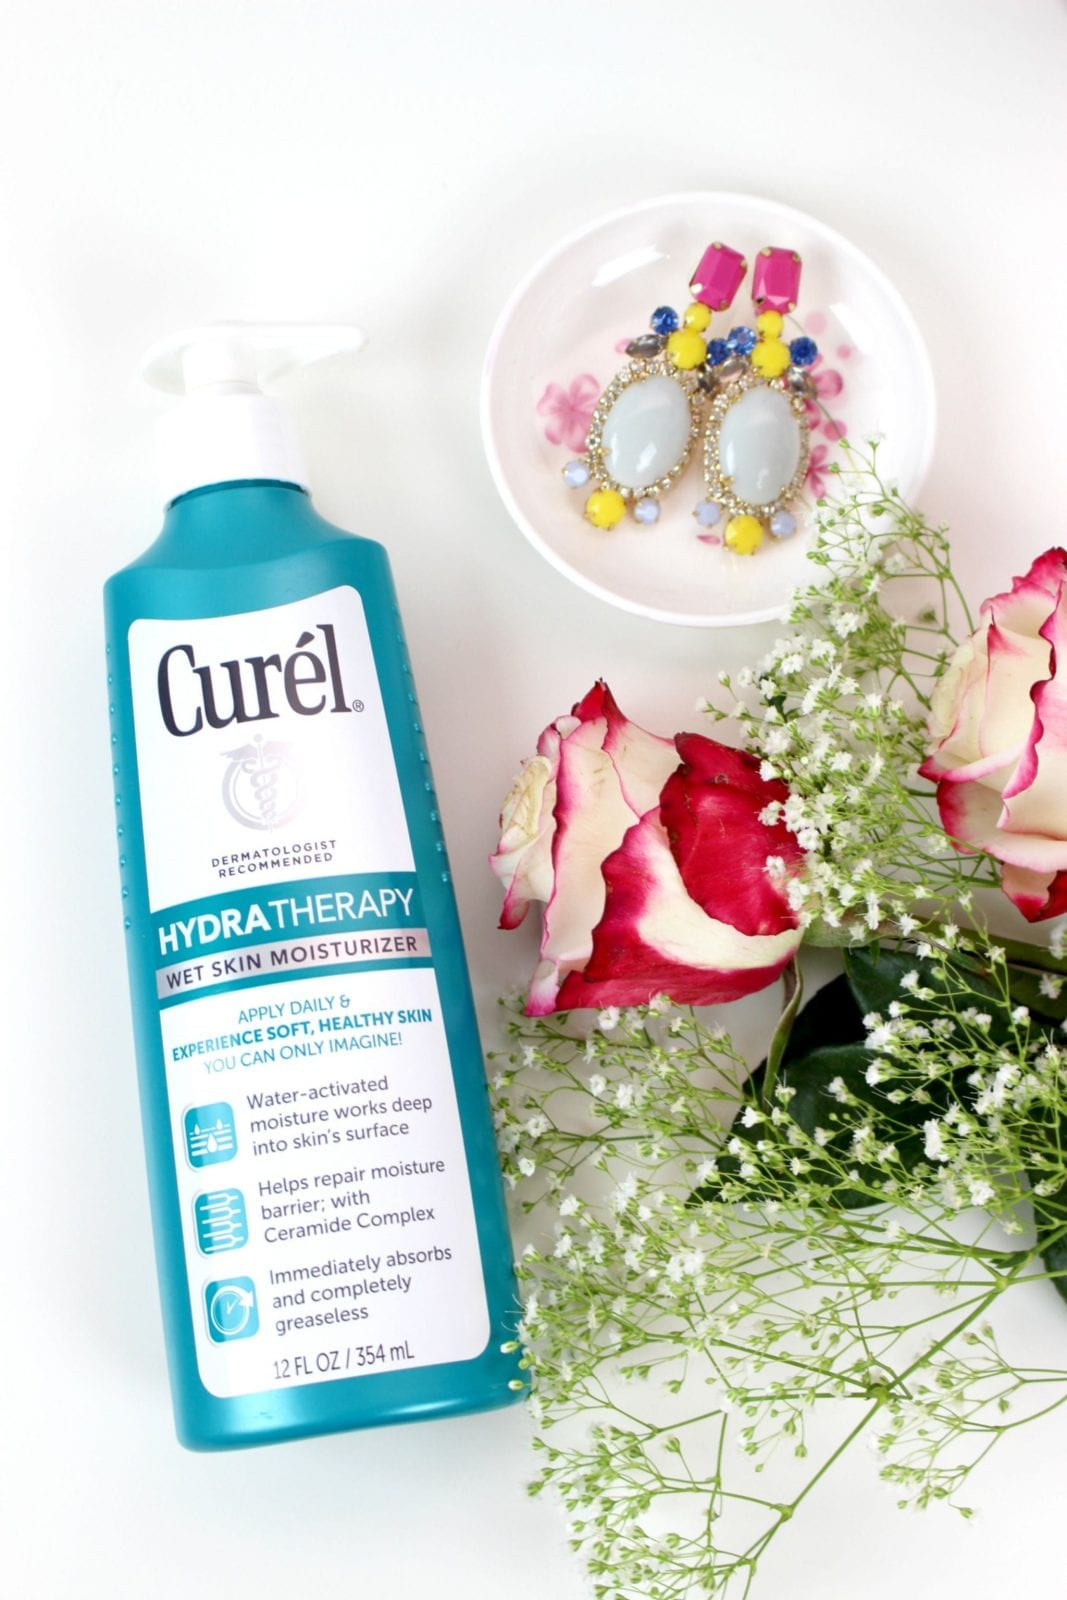 This is a close up of the Curel Moisturizer for Wet Skin